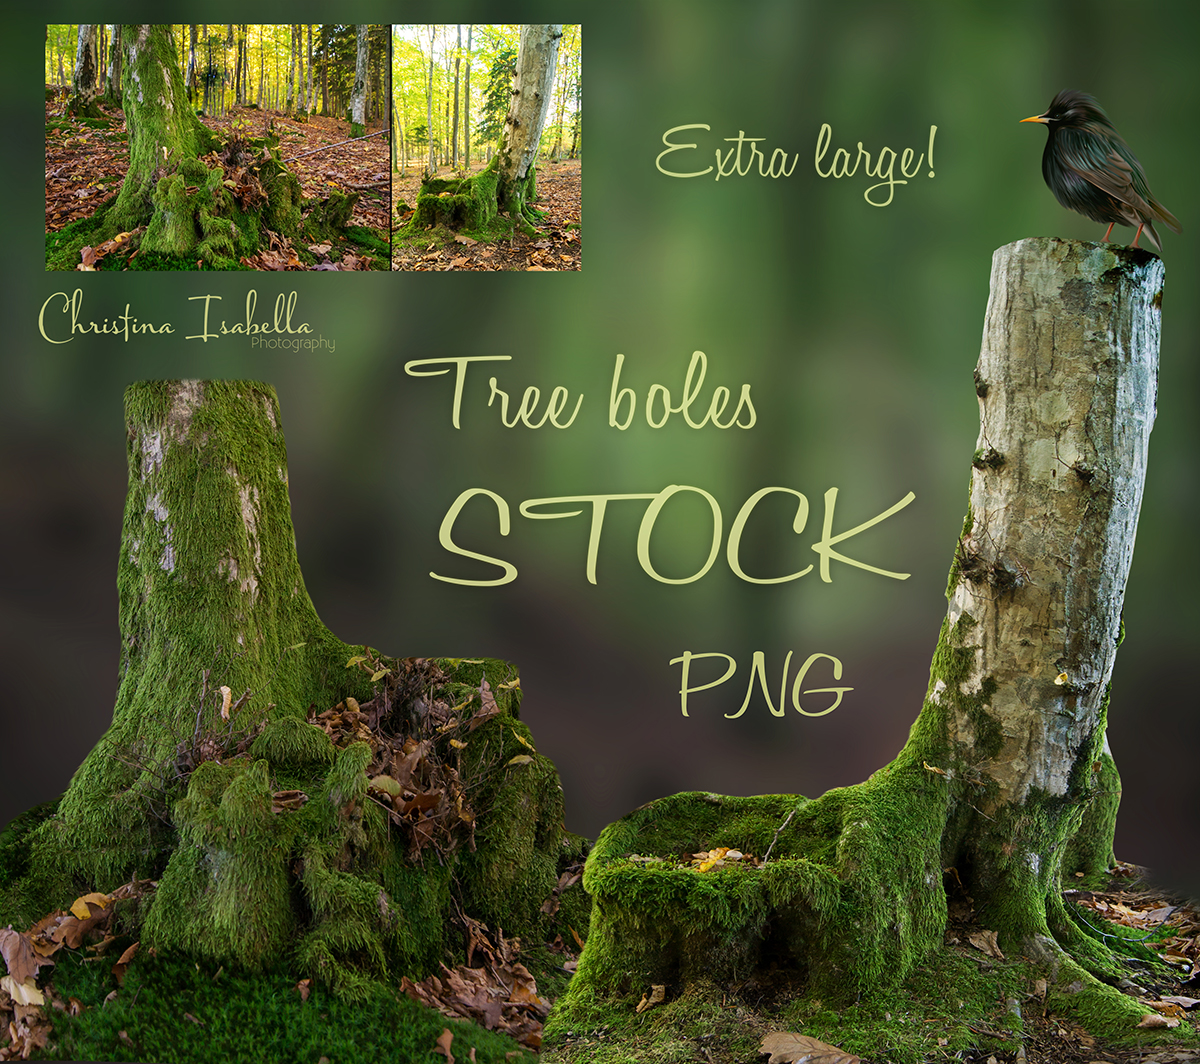 Tree boles PNG Stock